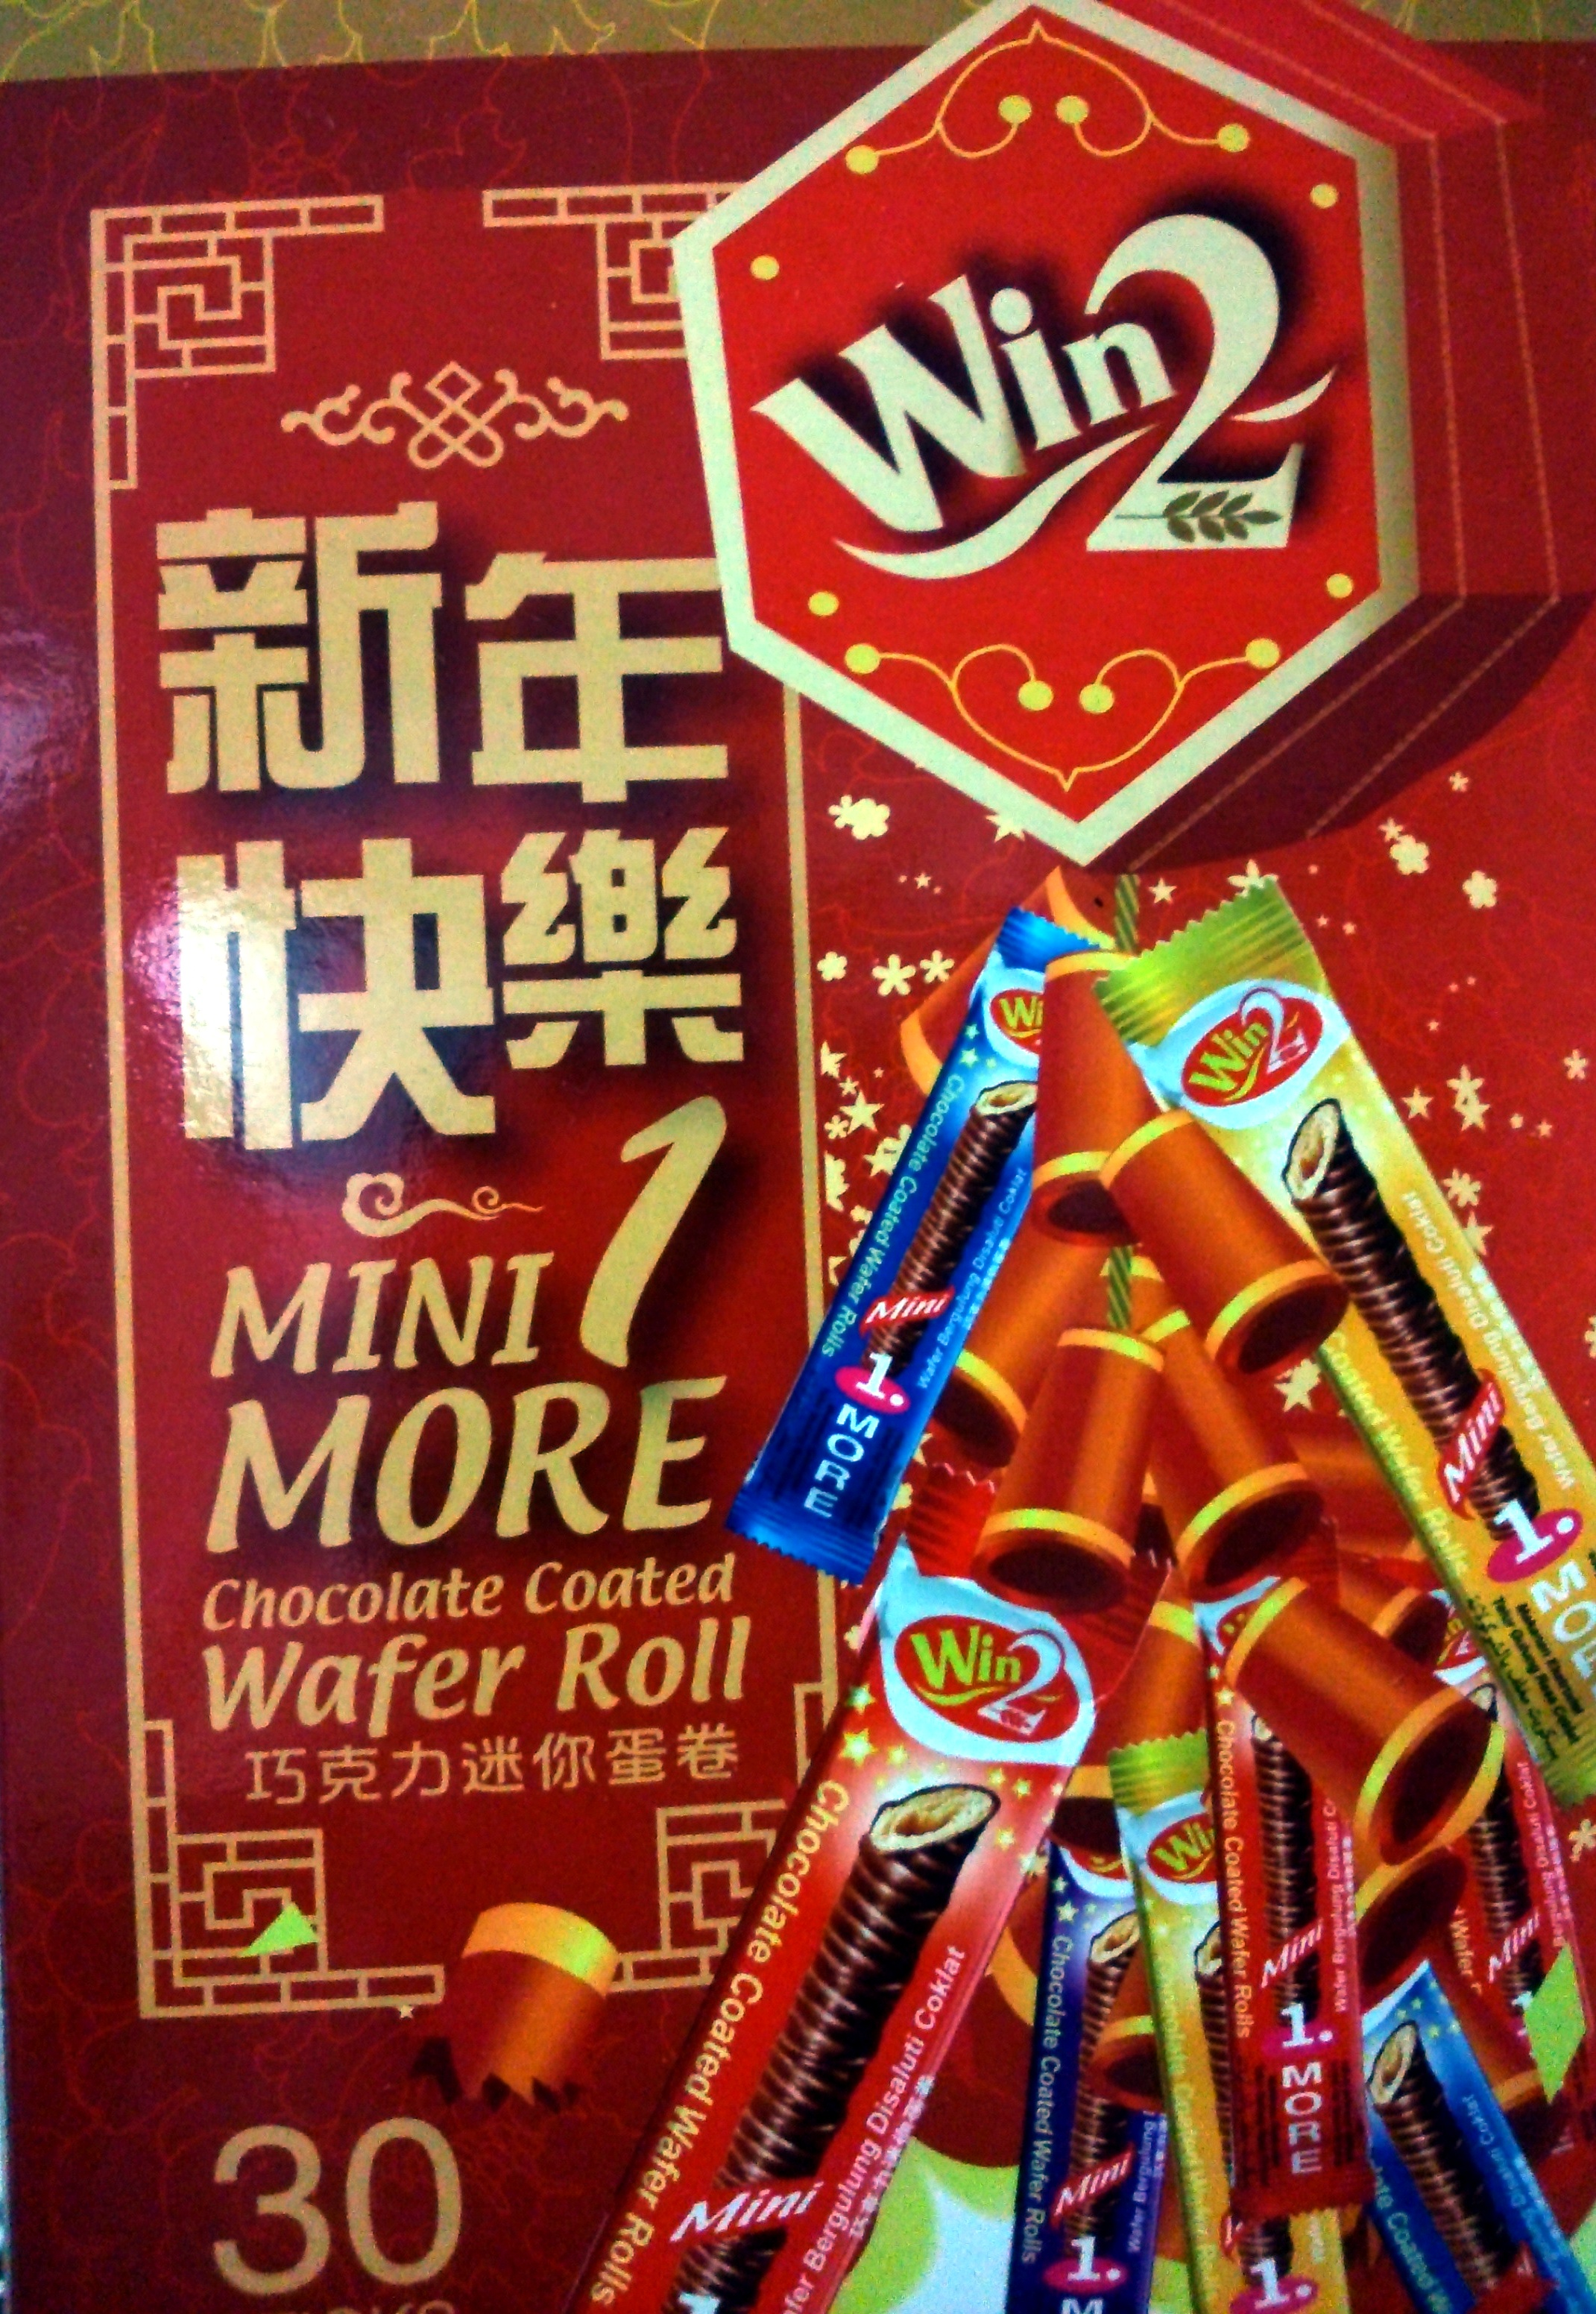 Mini 1 More Chocolate Coated Wafer Roll - Product - en